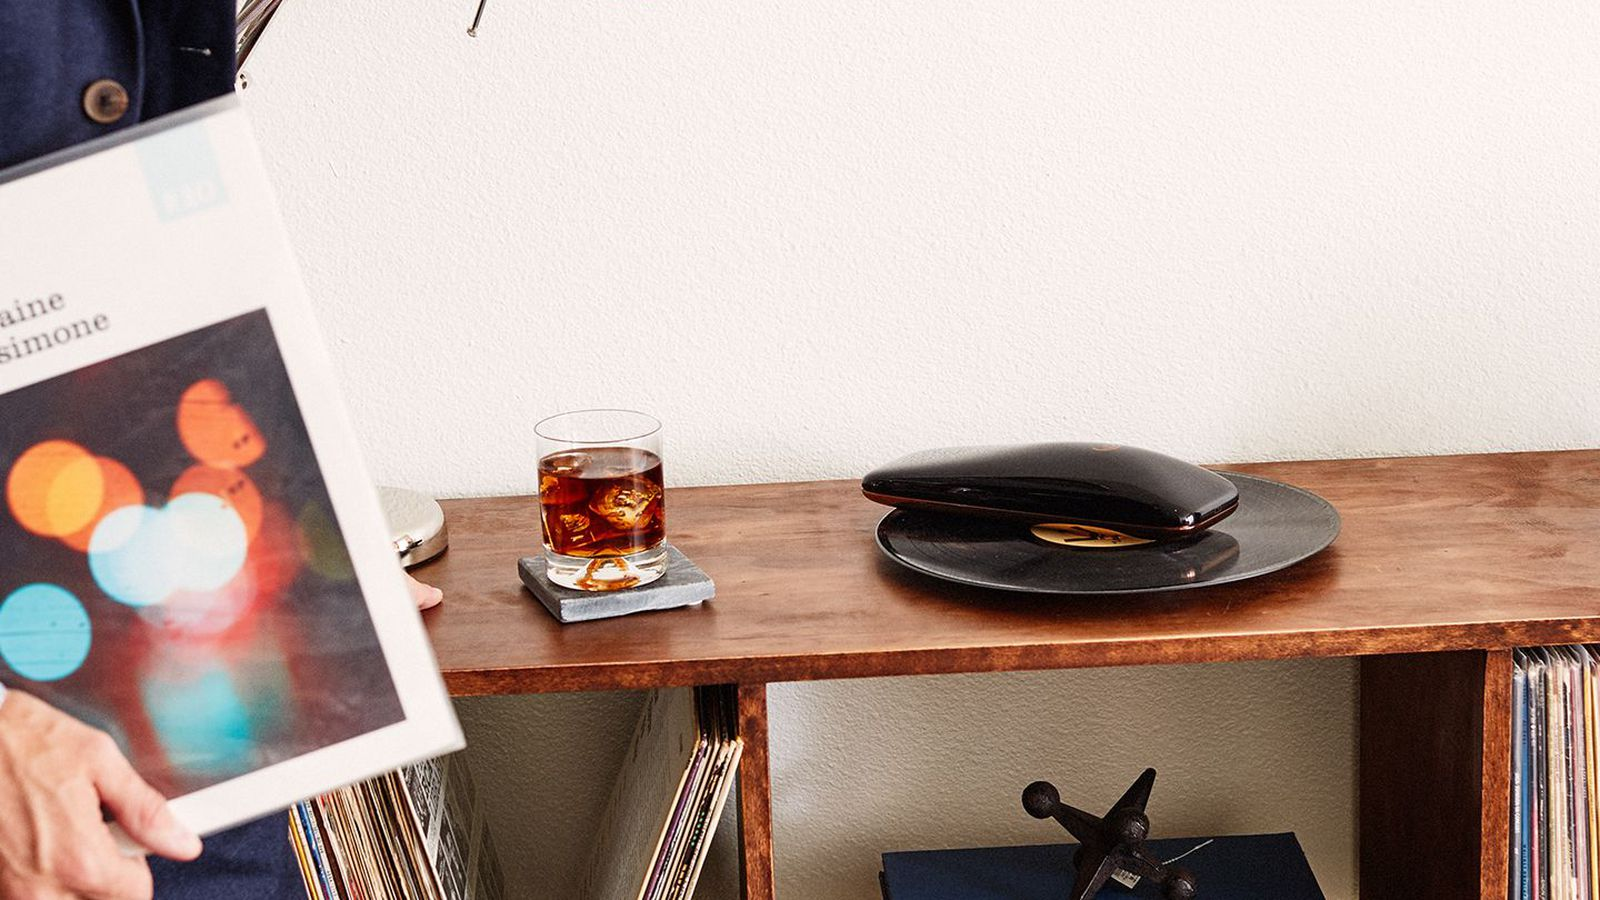 The Love Is The Latest Weird Turntable That Wants To Bring